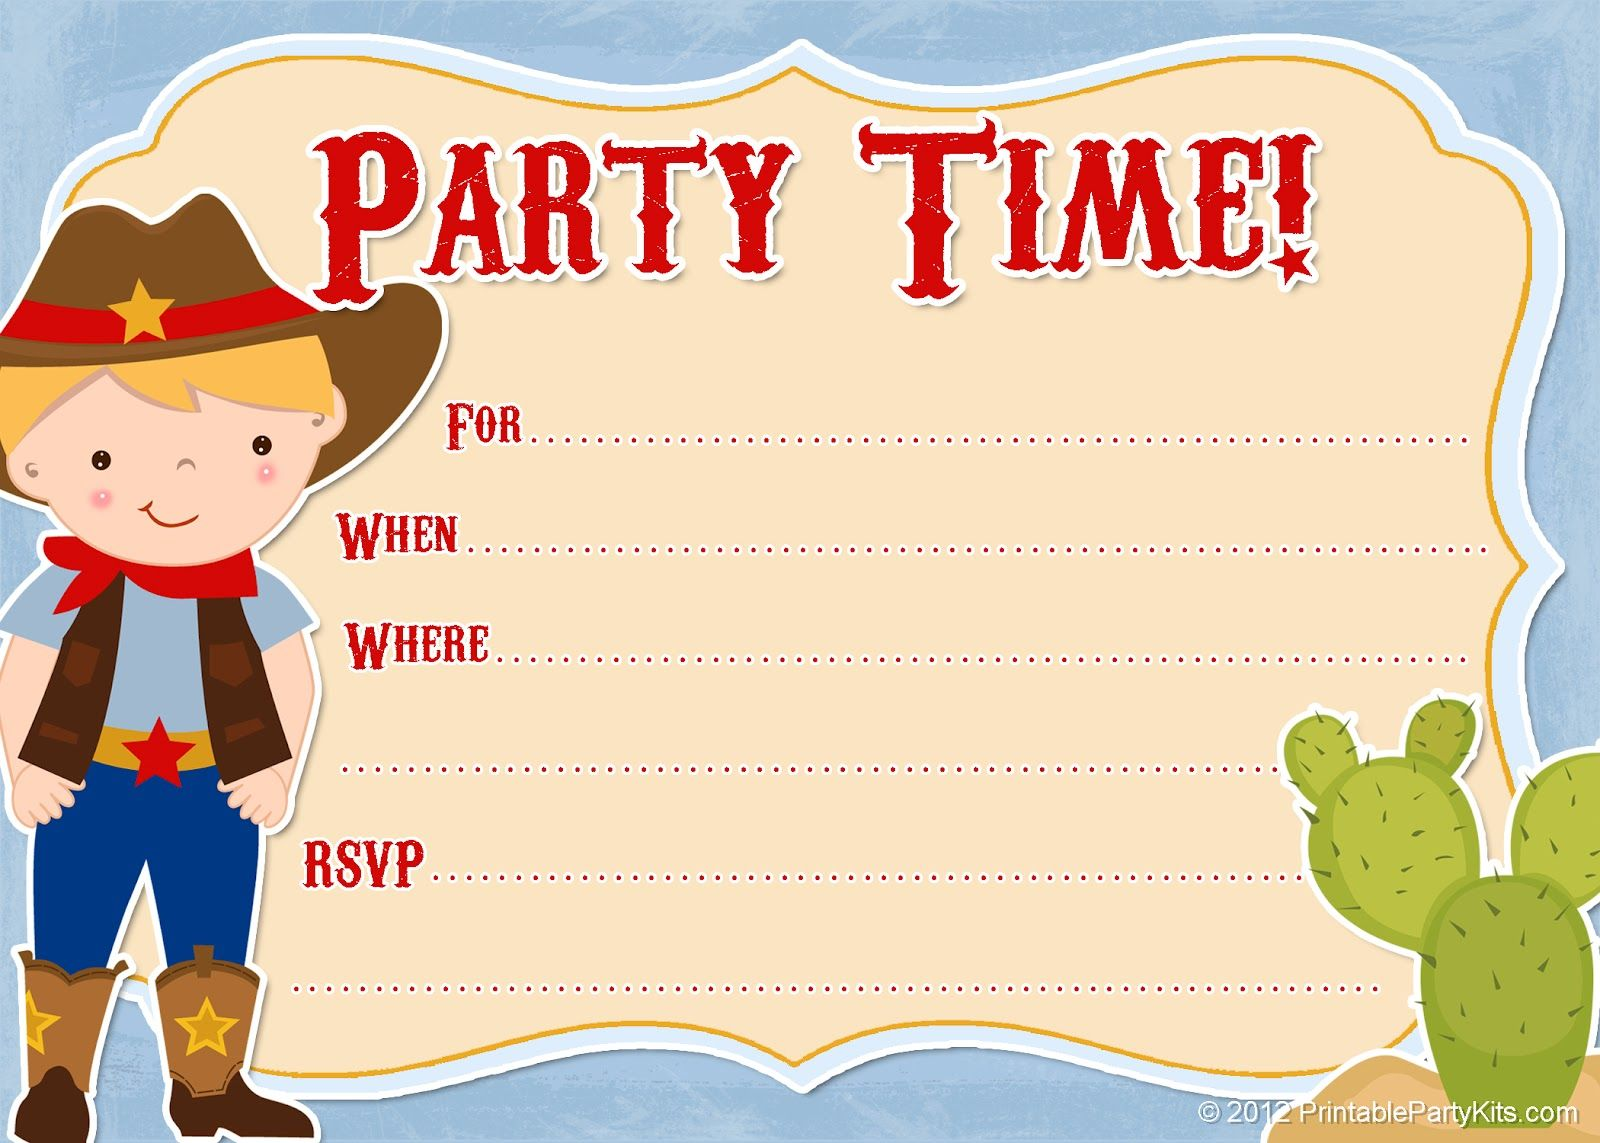 Free Printable Cowboy Party Invitations From PrintablePartyInvitationsBlogspot